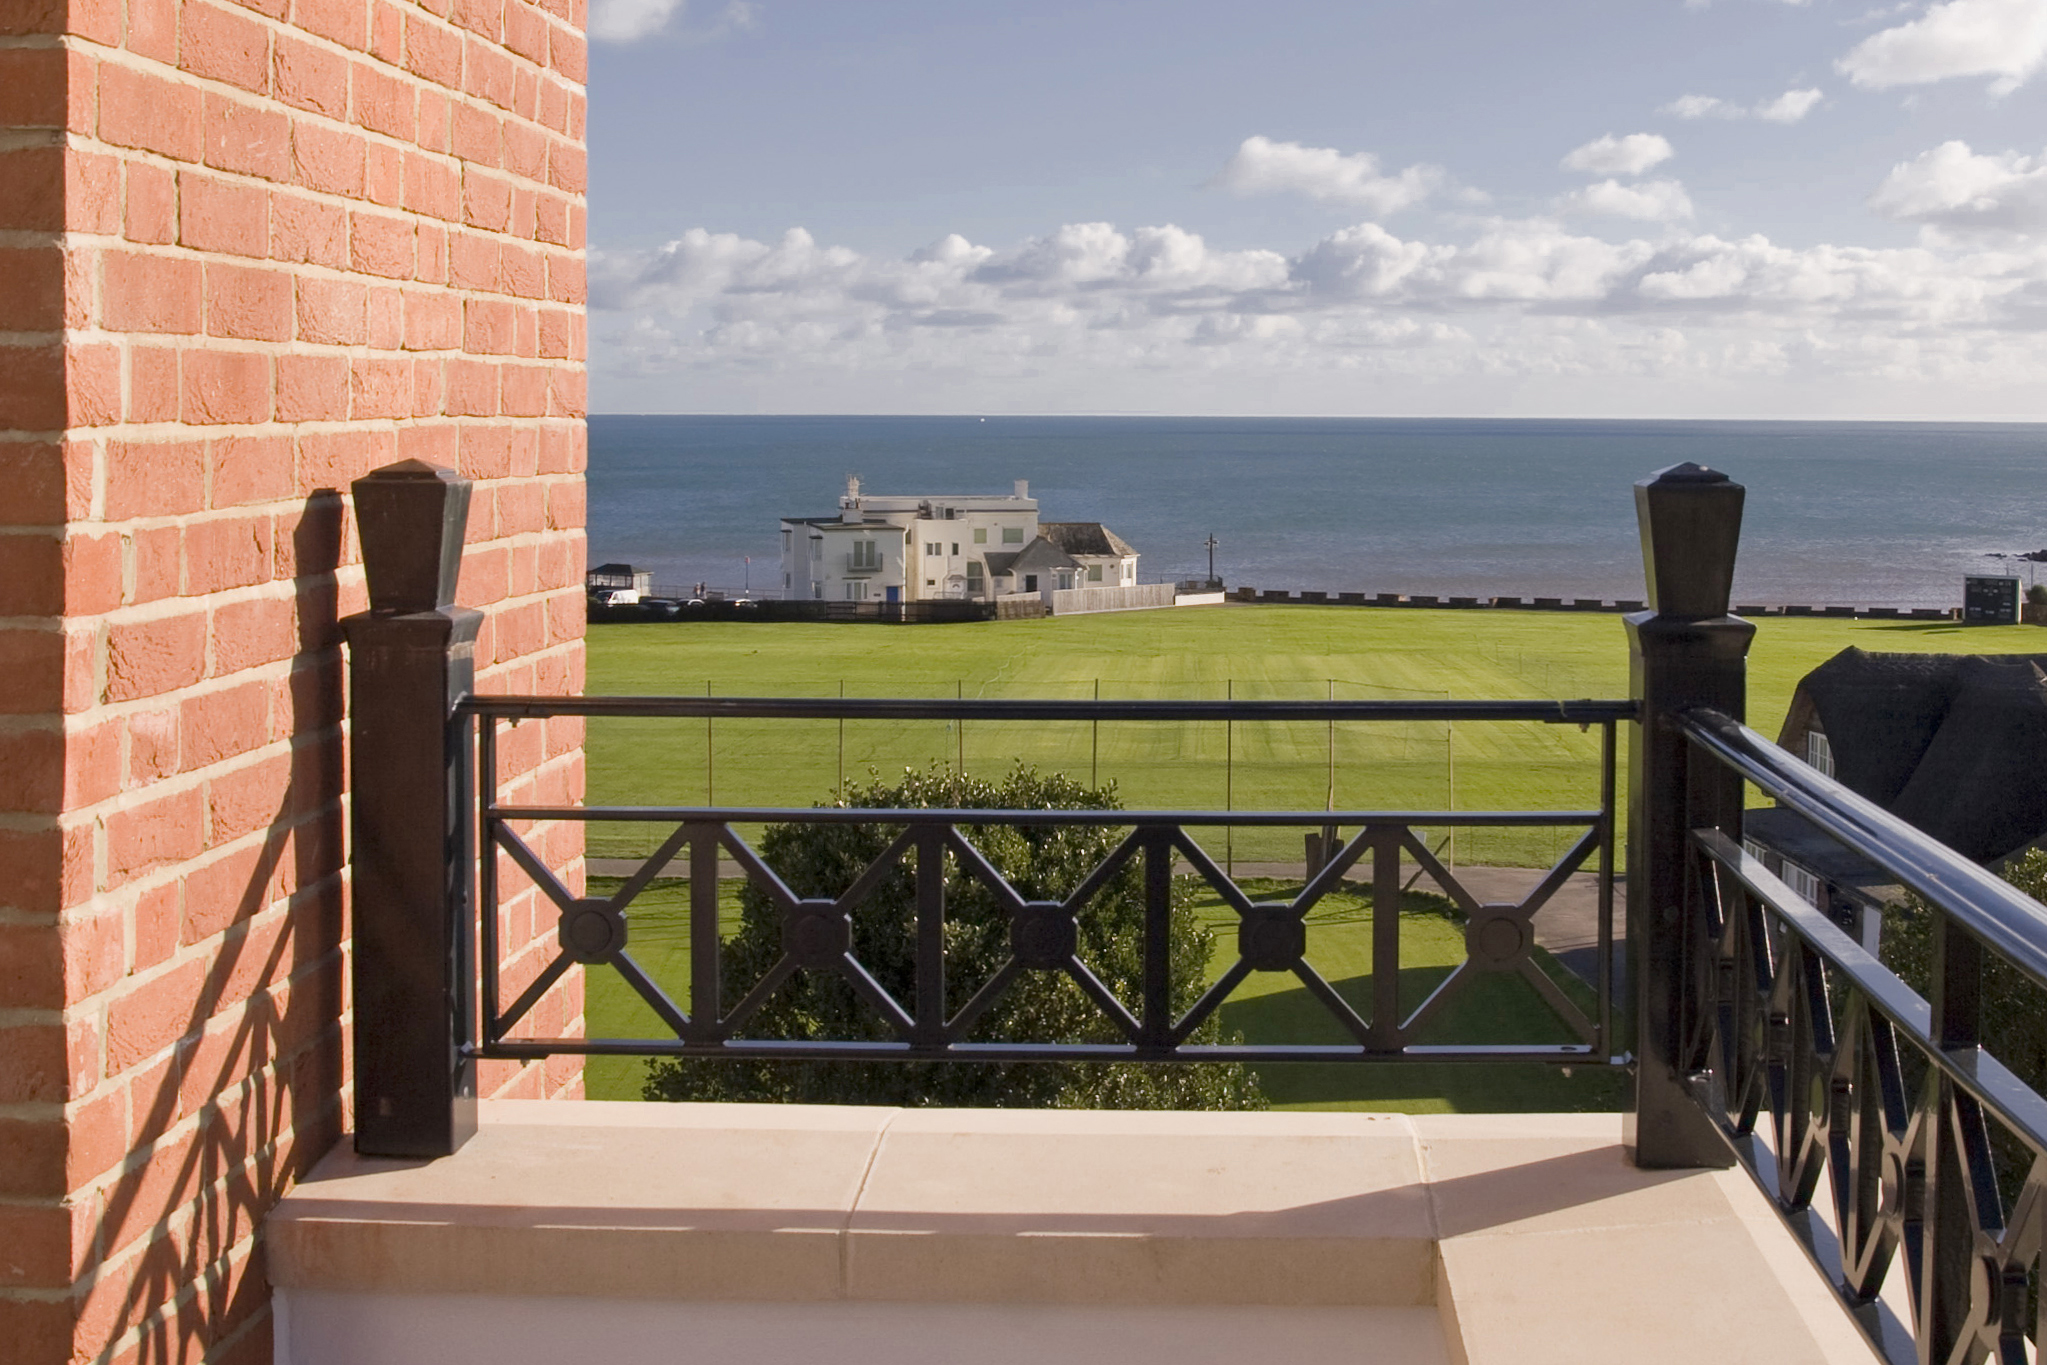 Sanditon apartments, Sidmouth, Devon - terrace view looking towards the seafront